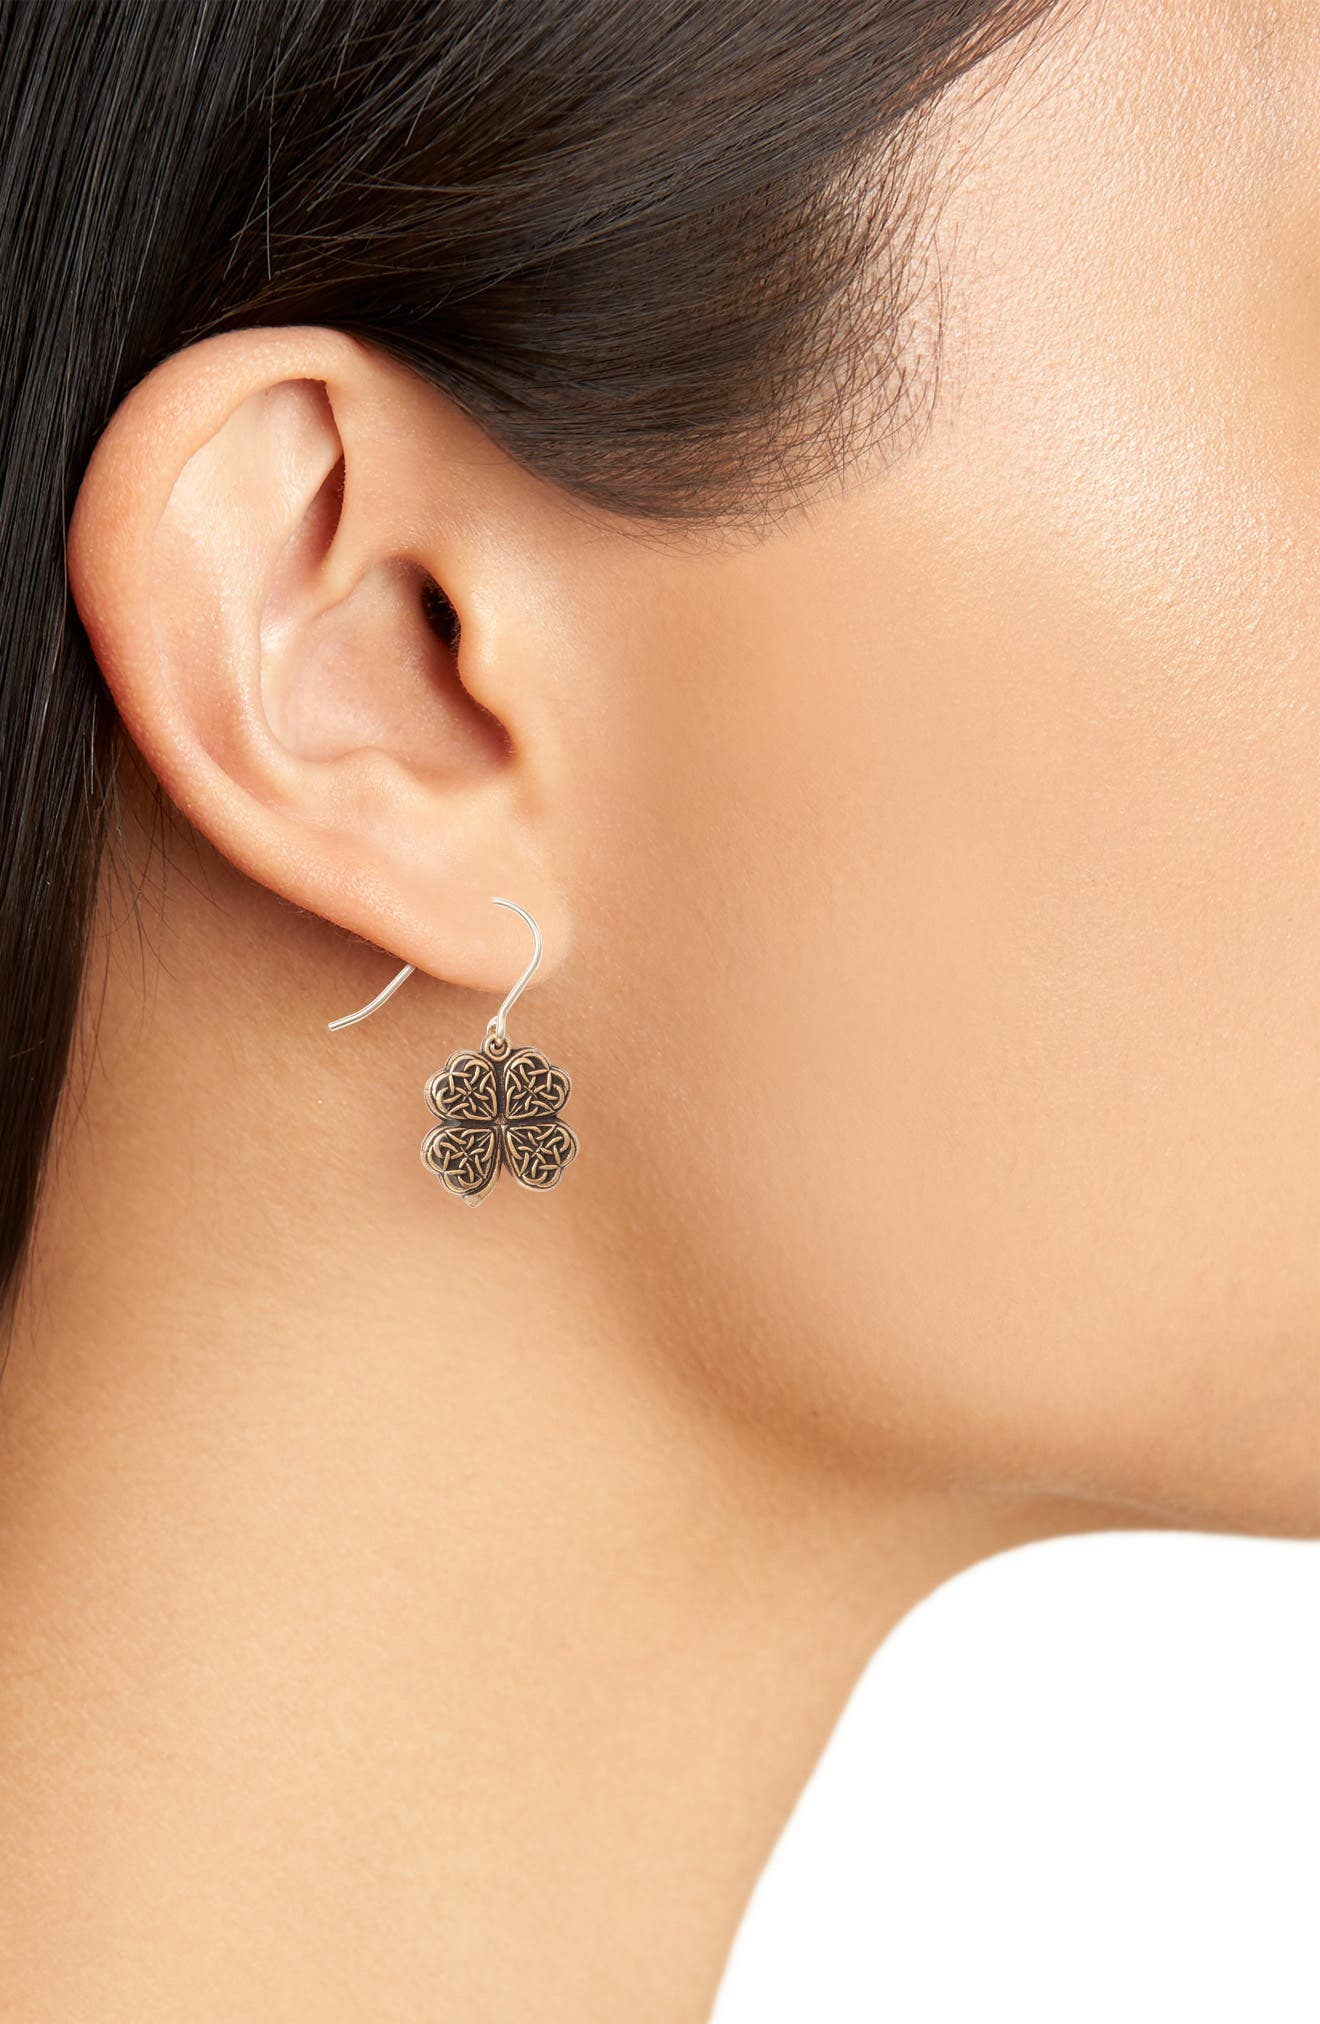 Four Leaf Clover Drop Earrings,                             Alternate thumbnail 2, color,                             Gold